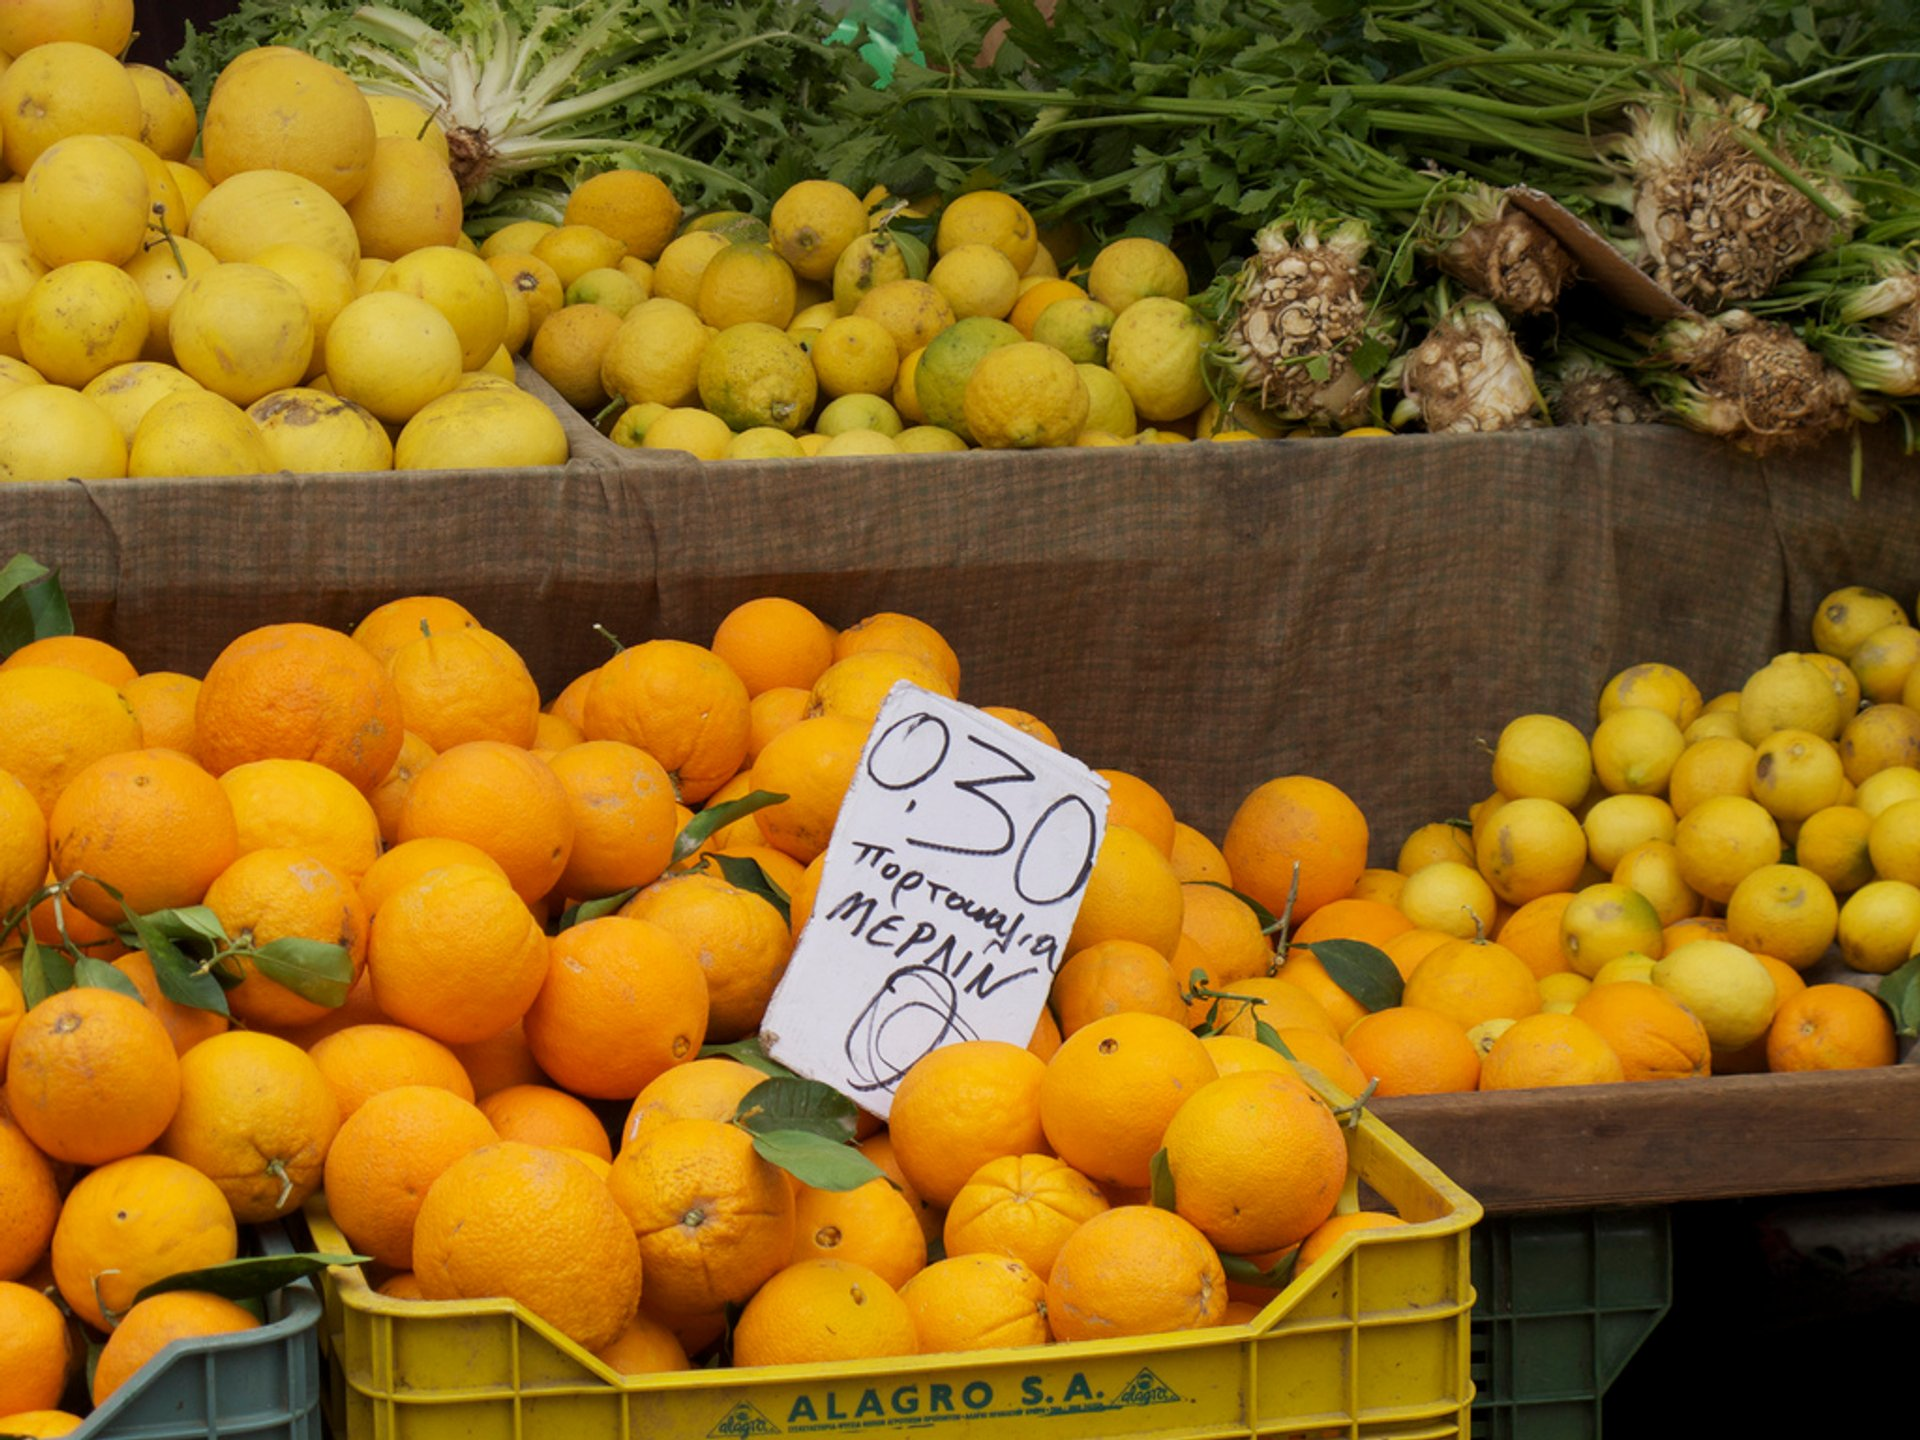 Best time for Lemon and Orange Season in Crete 2020